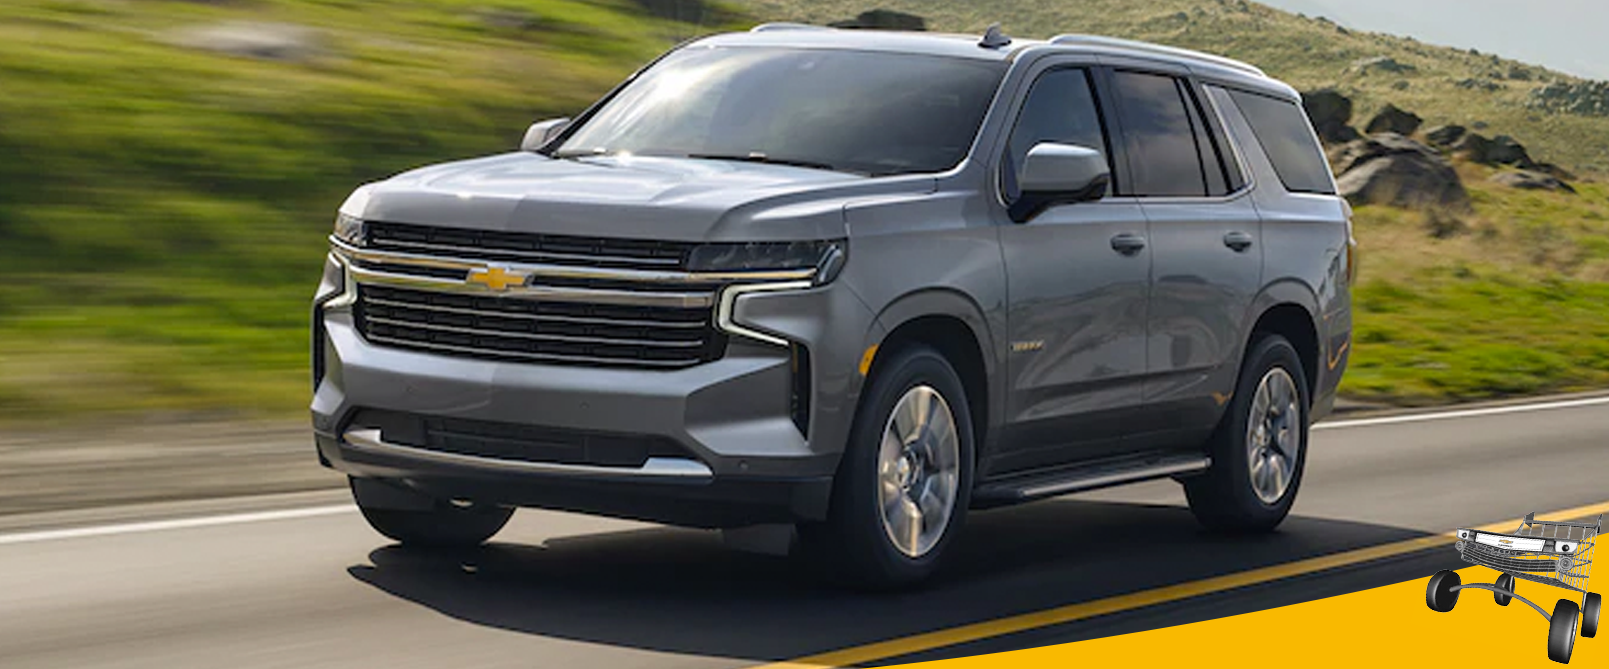 2021 Chevy Tahoe Interior and Technology